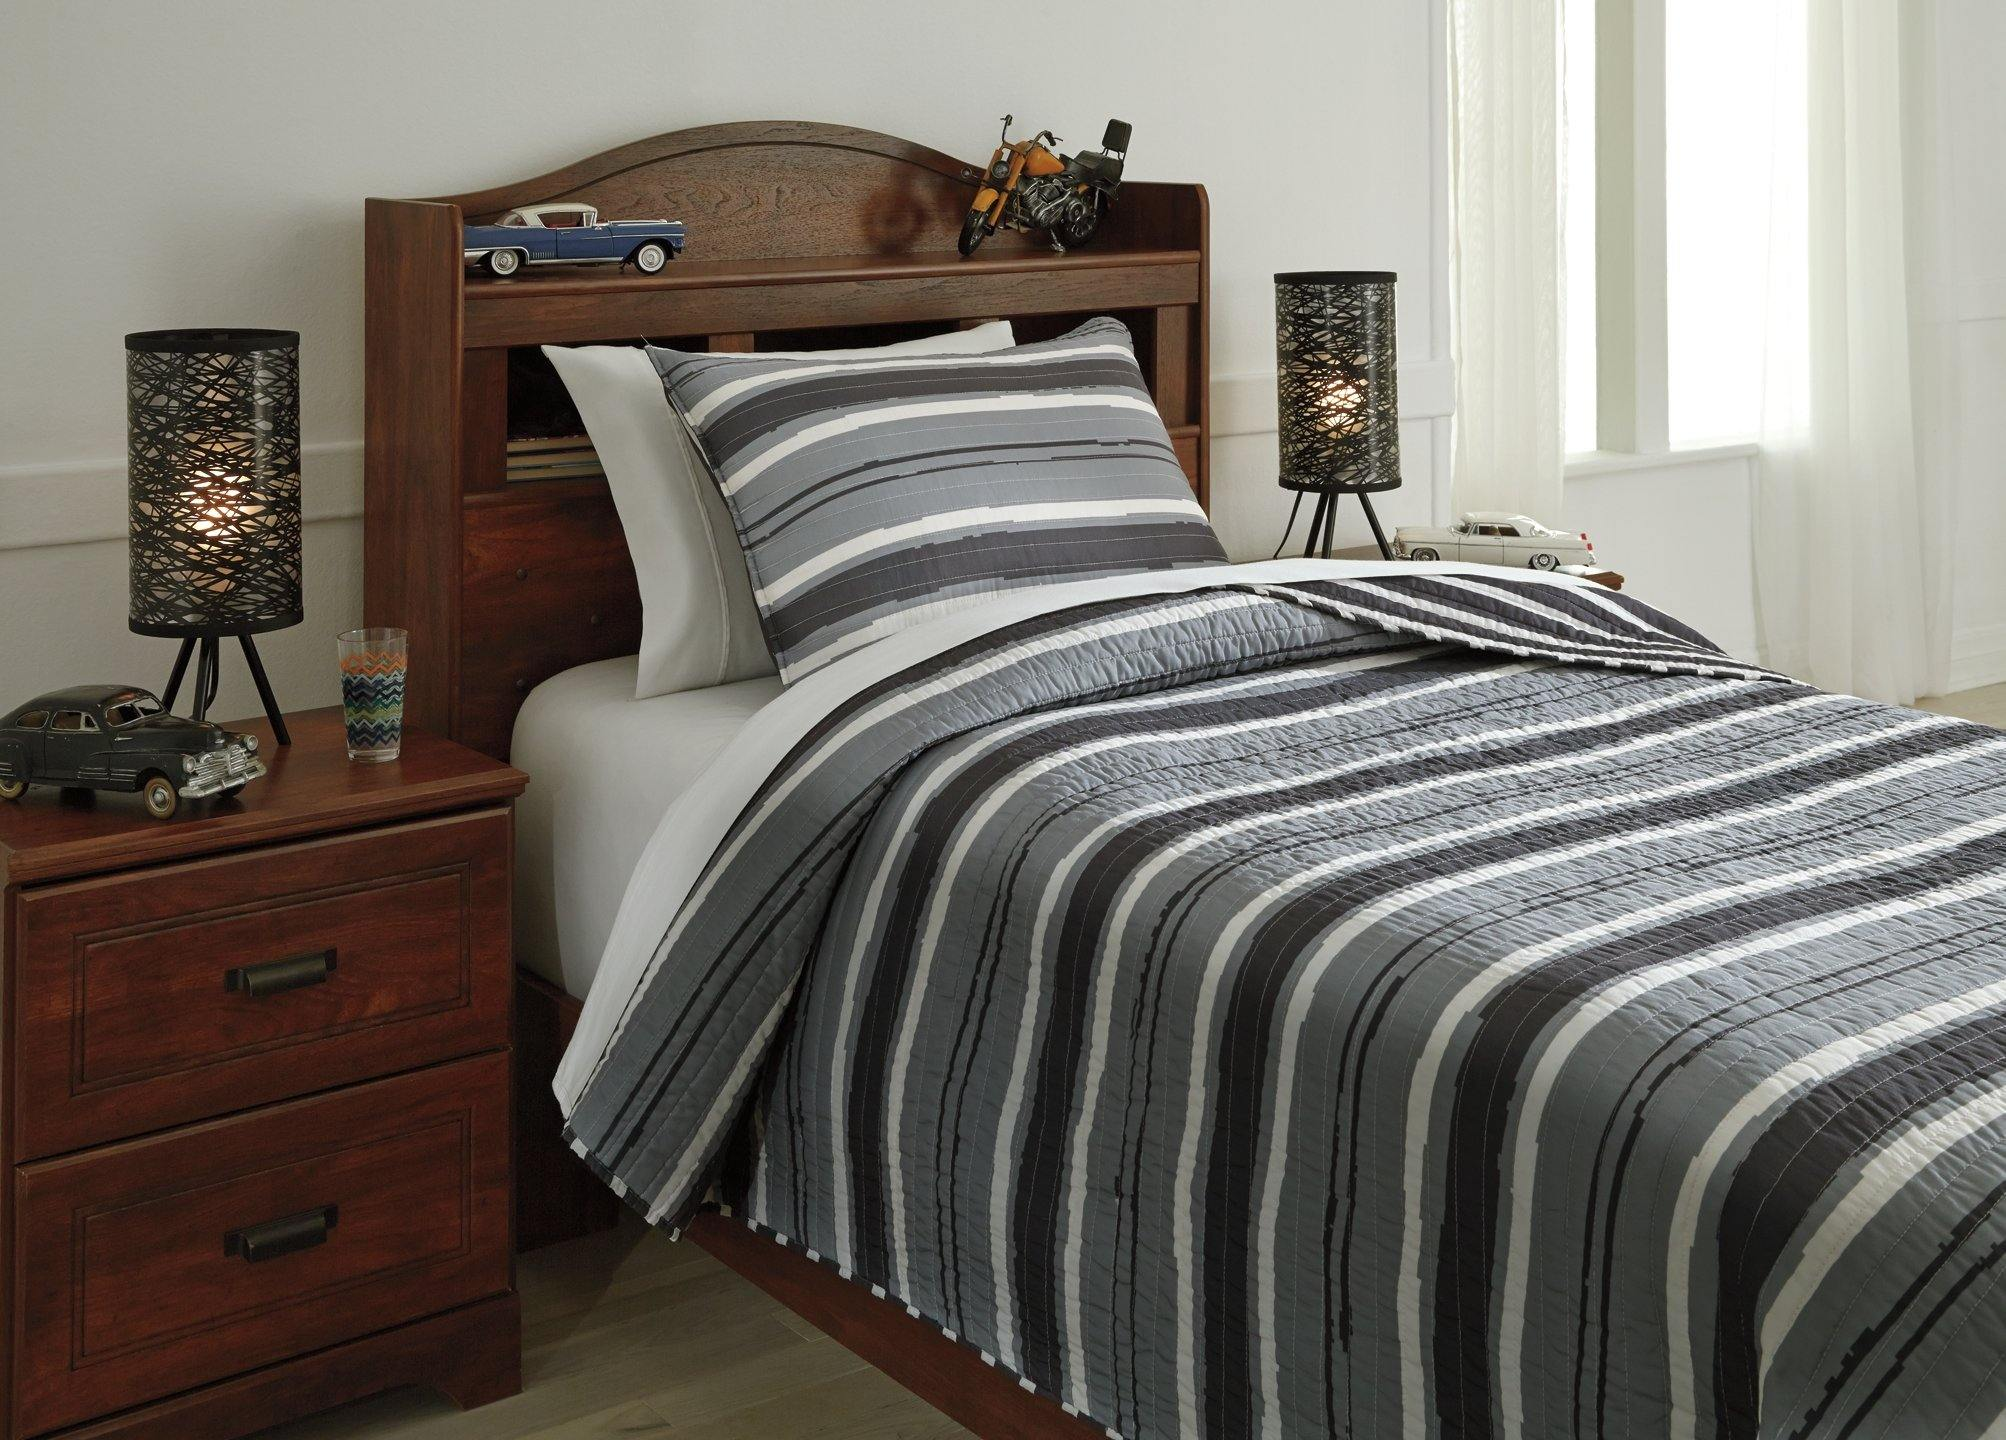 Merlin 2Piece Twin Coverlet Set Q420001T Gray/Cream Youth youth top of bed By ashley - sofafair.com